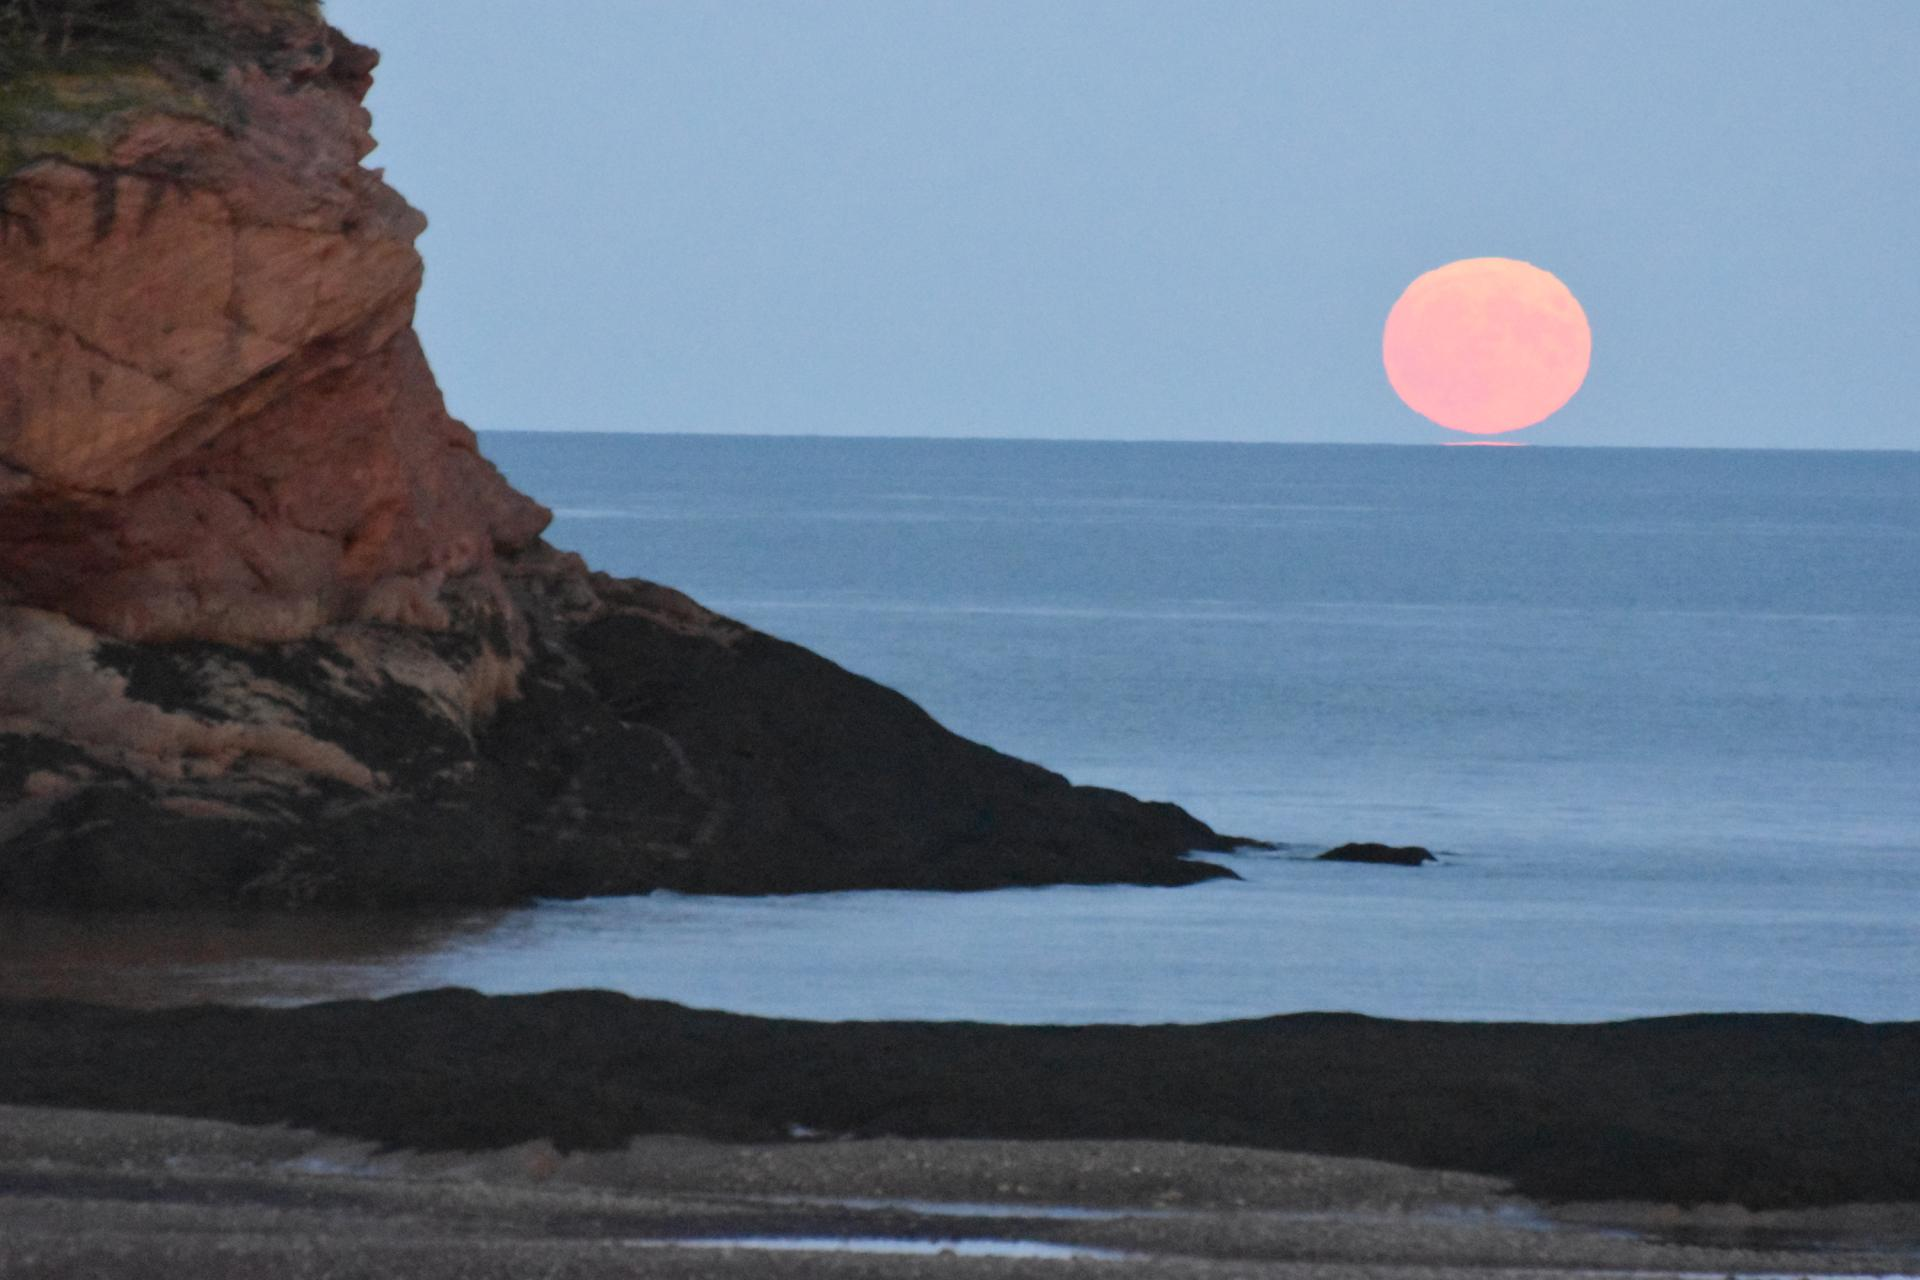 Moonrise over rocky shore